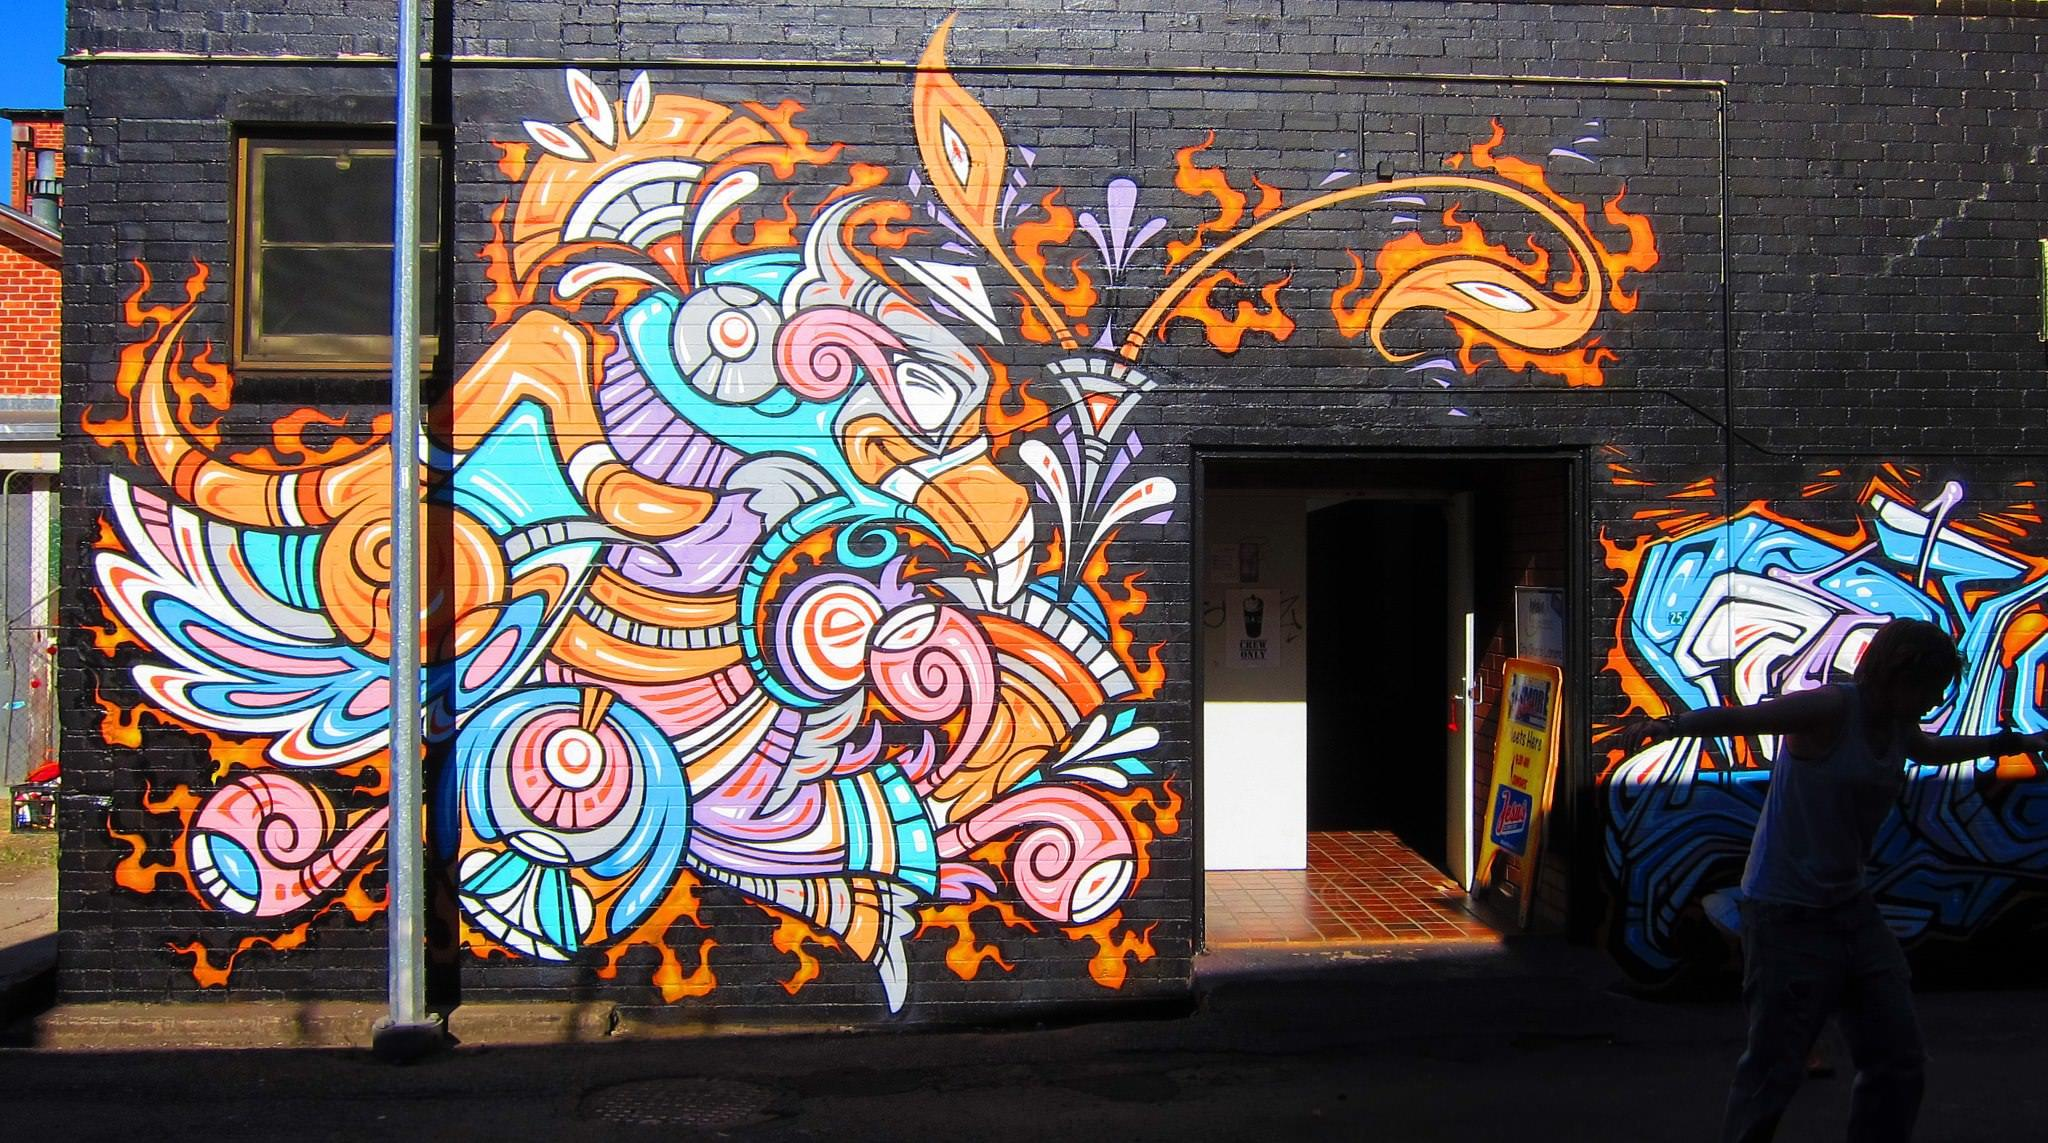 A happy graffiti phoenix smiles at all who enter in this for Art of mural painting